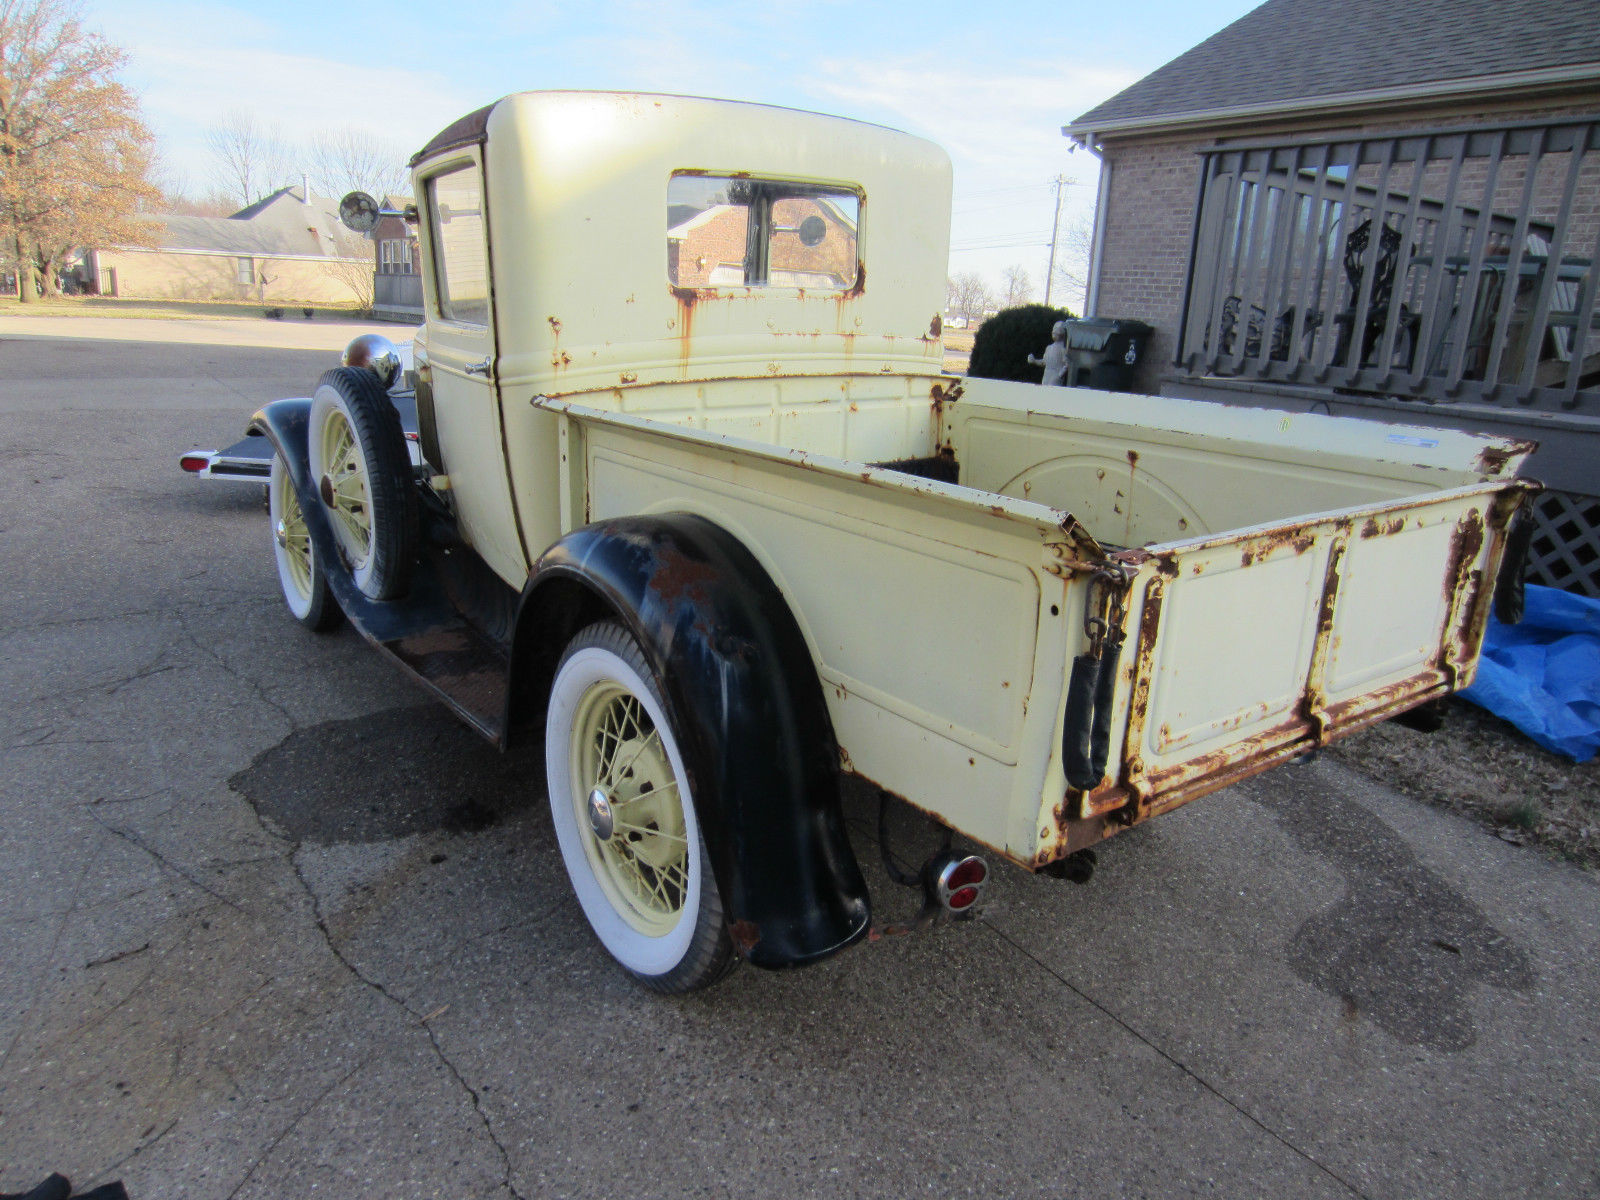 1931-ford-model-a-pick-up-late-31-wide-bed-ratrod-hot-rodstreet-rod-patina-4.JPG